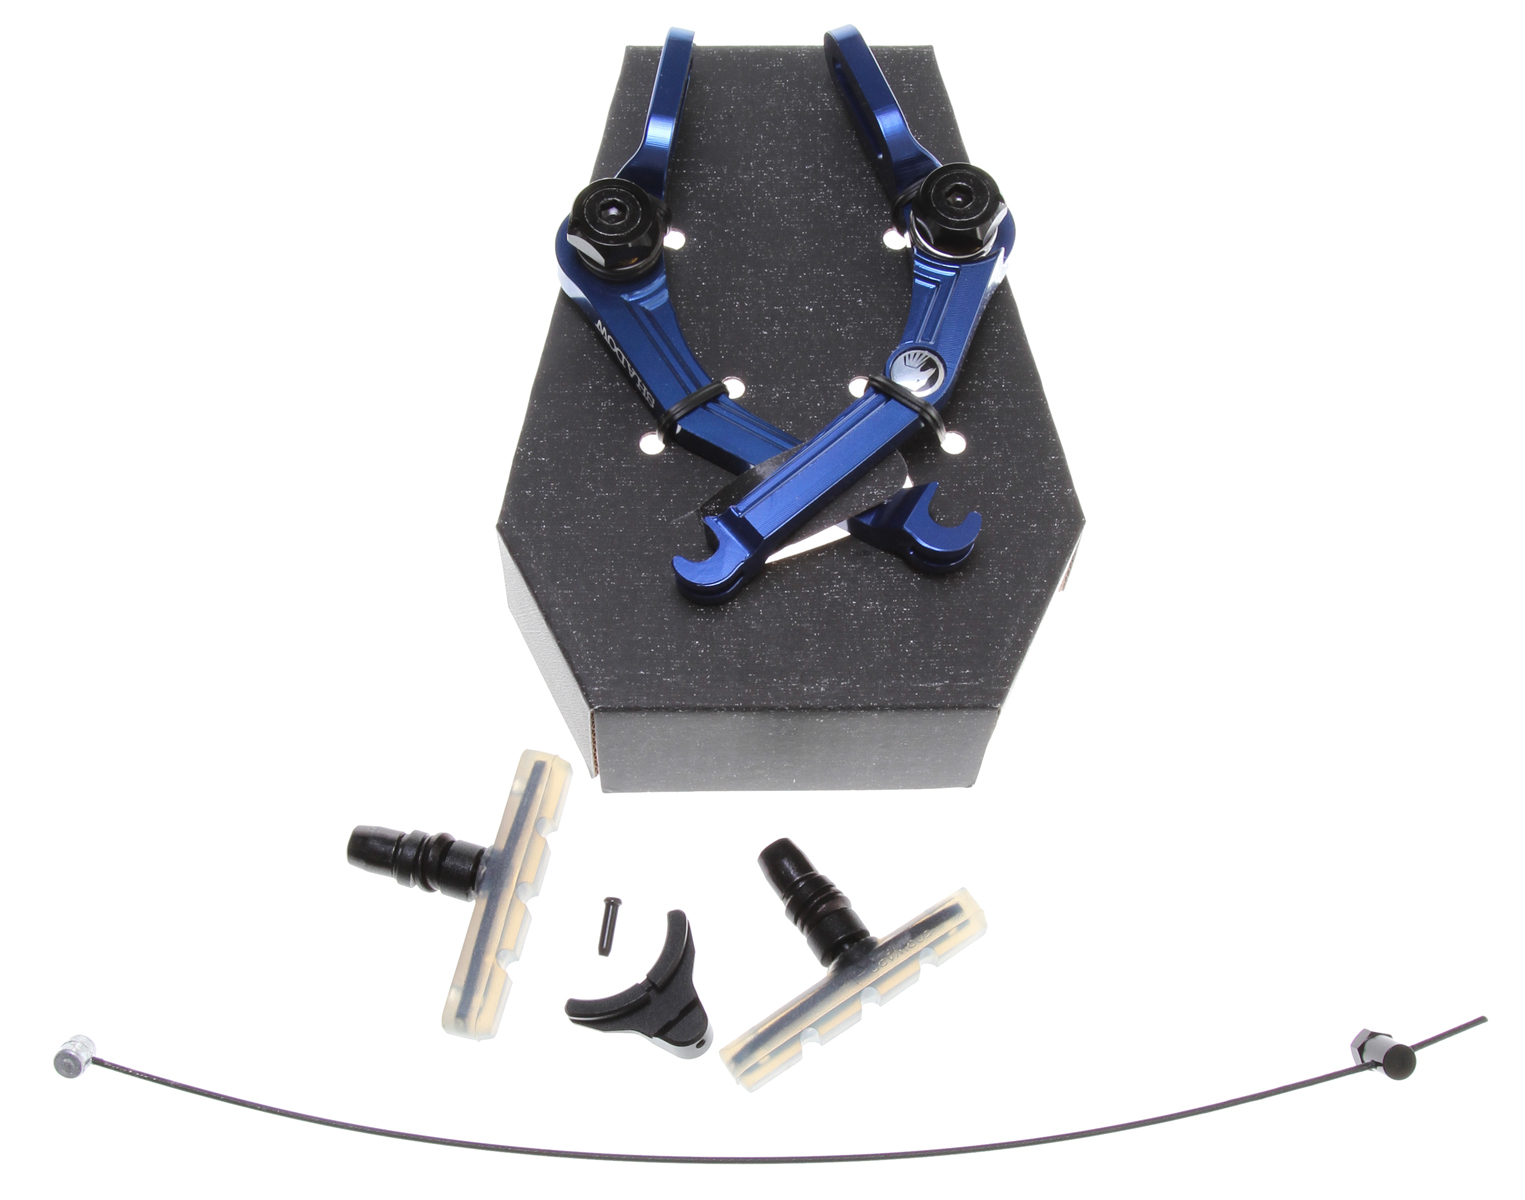 BMX Key Features of the The Shadow Conspiracy Caliper U Brakes Perma Blue: Brake Type : BMX Sidepull Brake Lever Actuation: Short Pull Wght/Dims: .6 lbs. 7 x 5.75 x 3 - $63.95